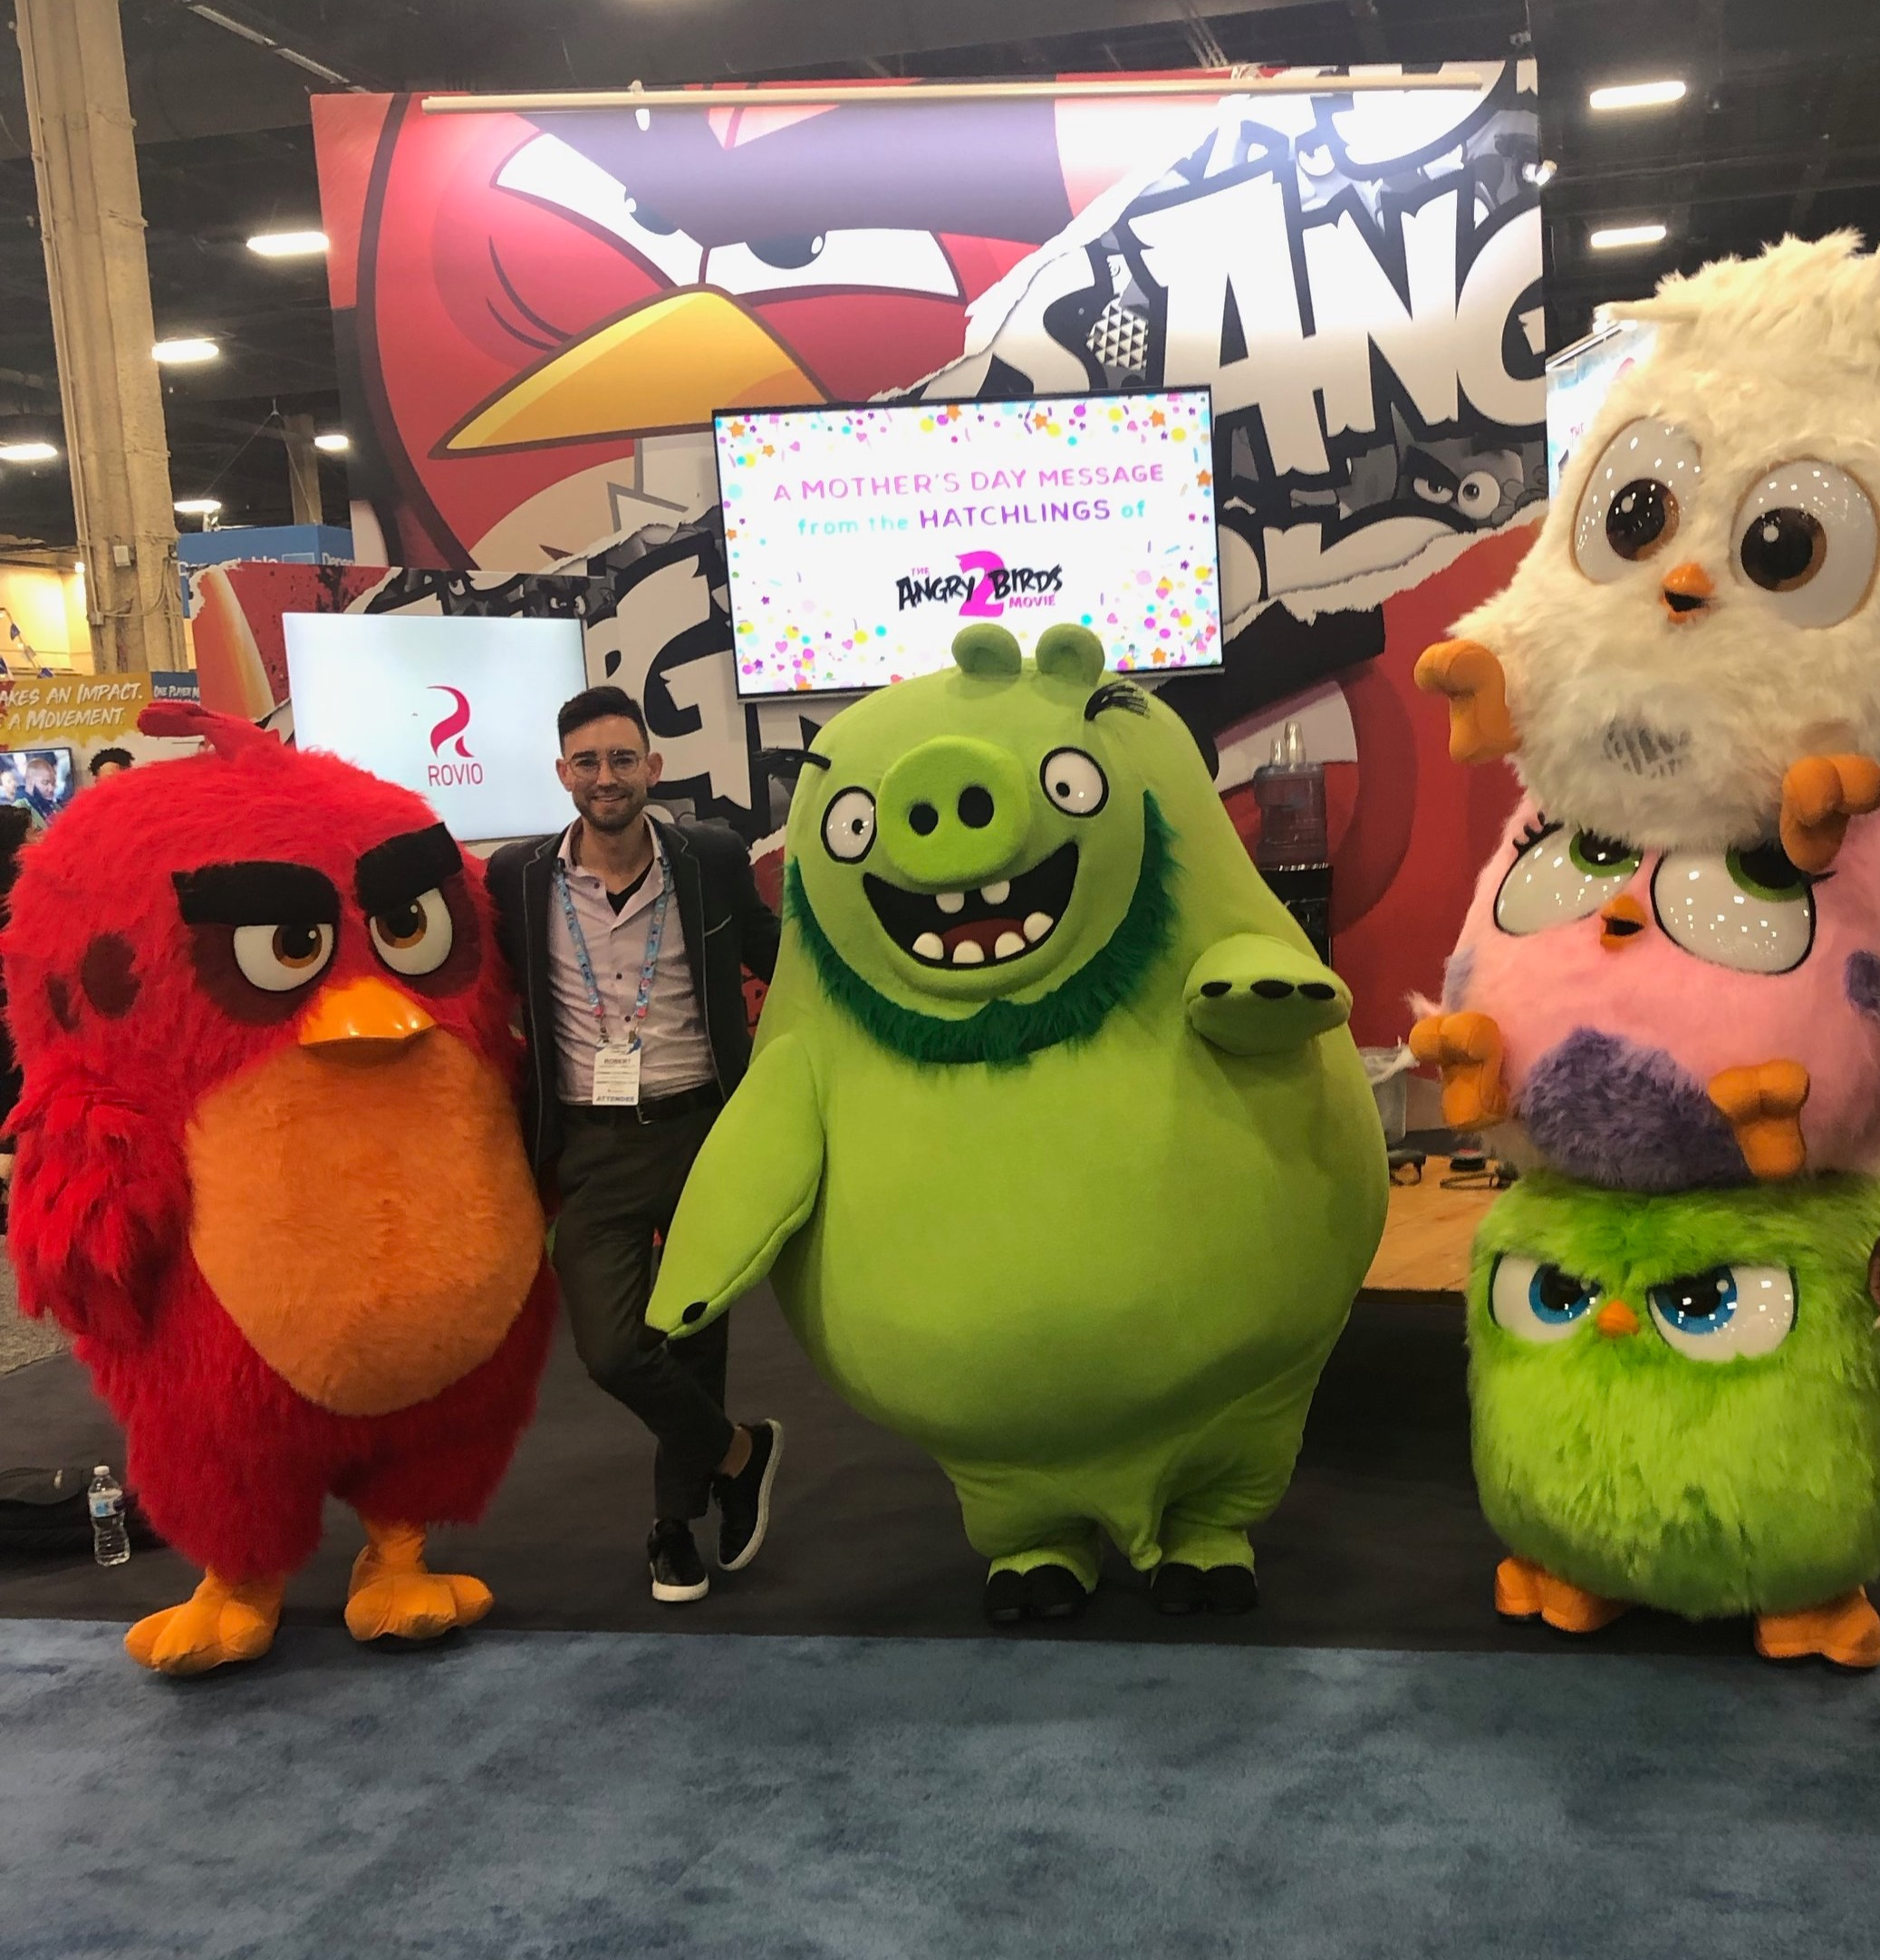 LICENSING EXPO 2019 - The Licensing Expo allows us the opportunity to meet with new and former clients to discuss potential LBE opportunities. Lookout for exciting announcements in the near future.